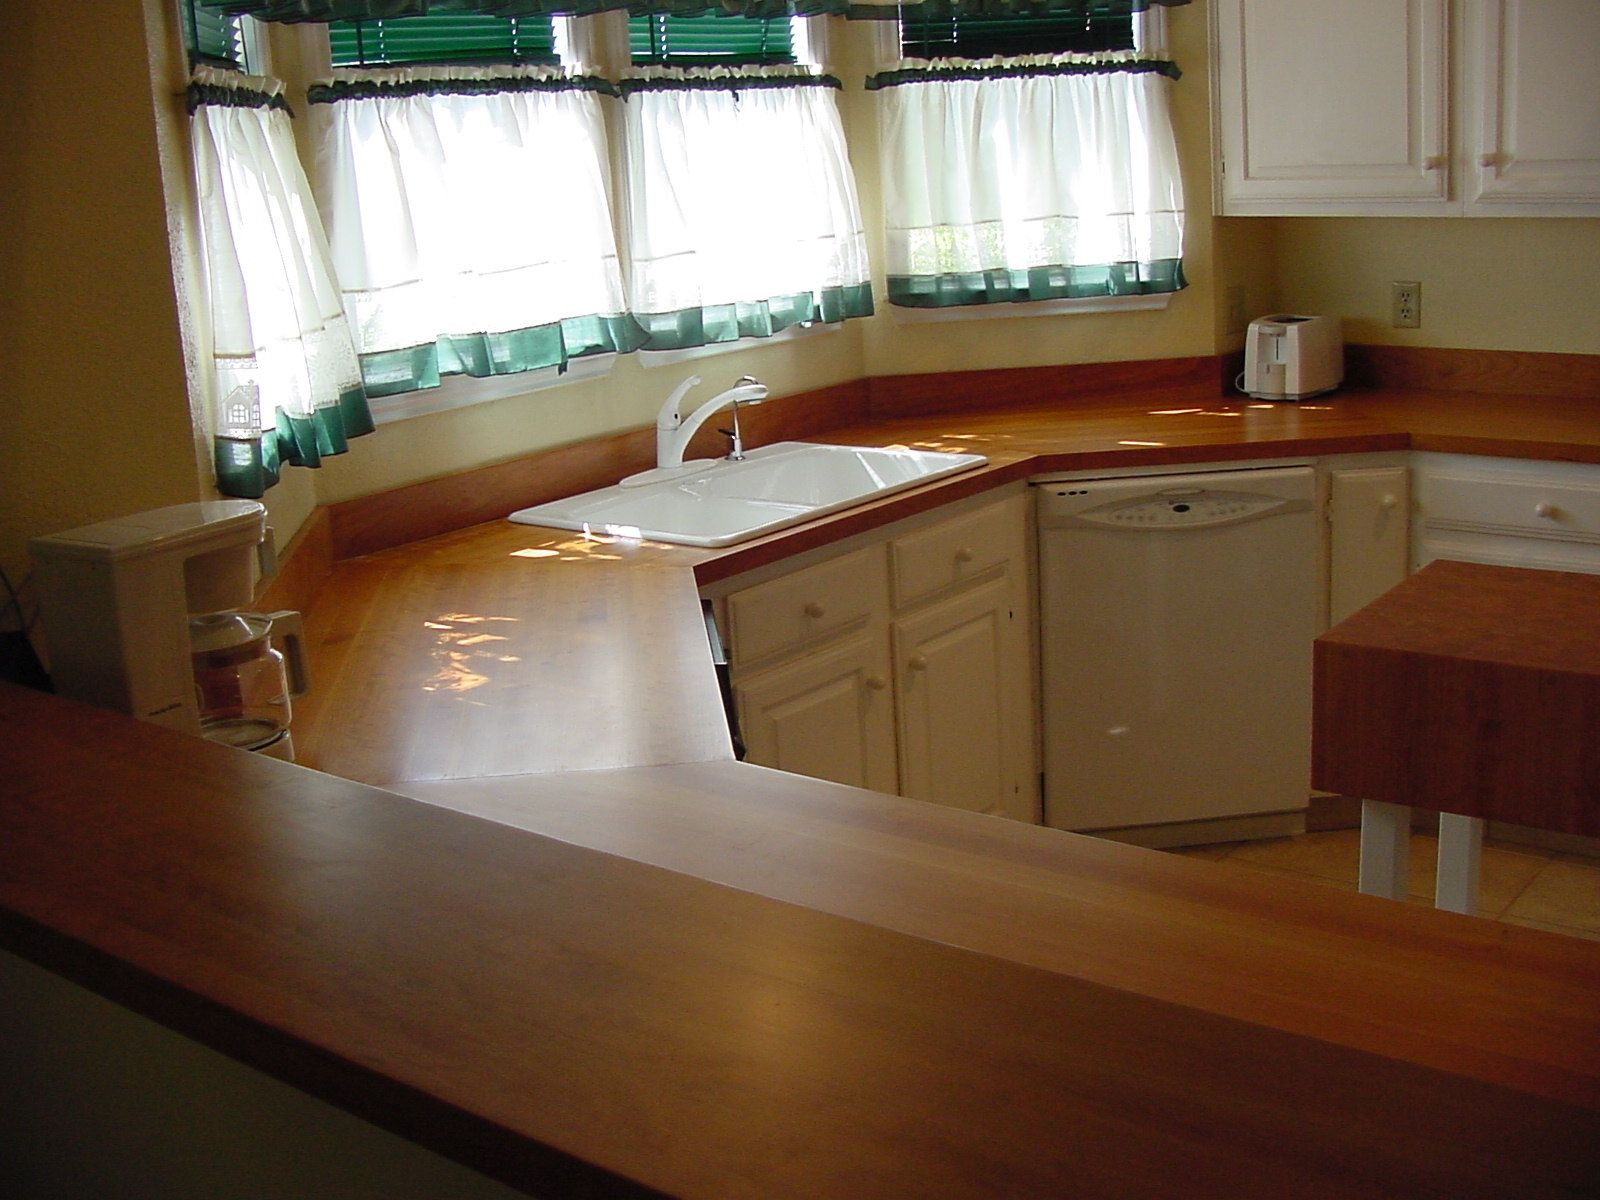 Cherry Wood Countertop Photo Gallery, by DeVos Custom Woodworking on kitchen islands with wood countertops, kitchen backsplash ideas with black countertops, tile with wood countertops, kitchen backsplash ideas laminate countertops, black kitchen cabinets with wood countertops,